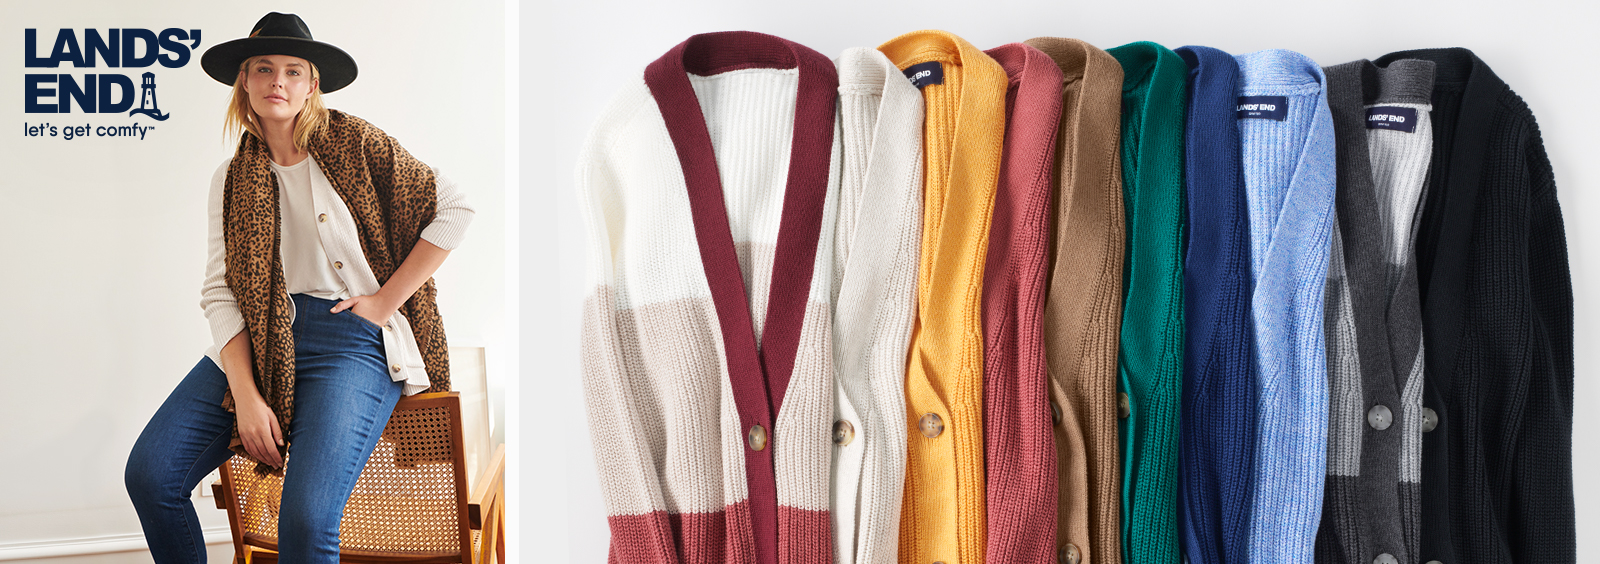 8 Styles That Are Trending This Fall